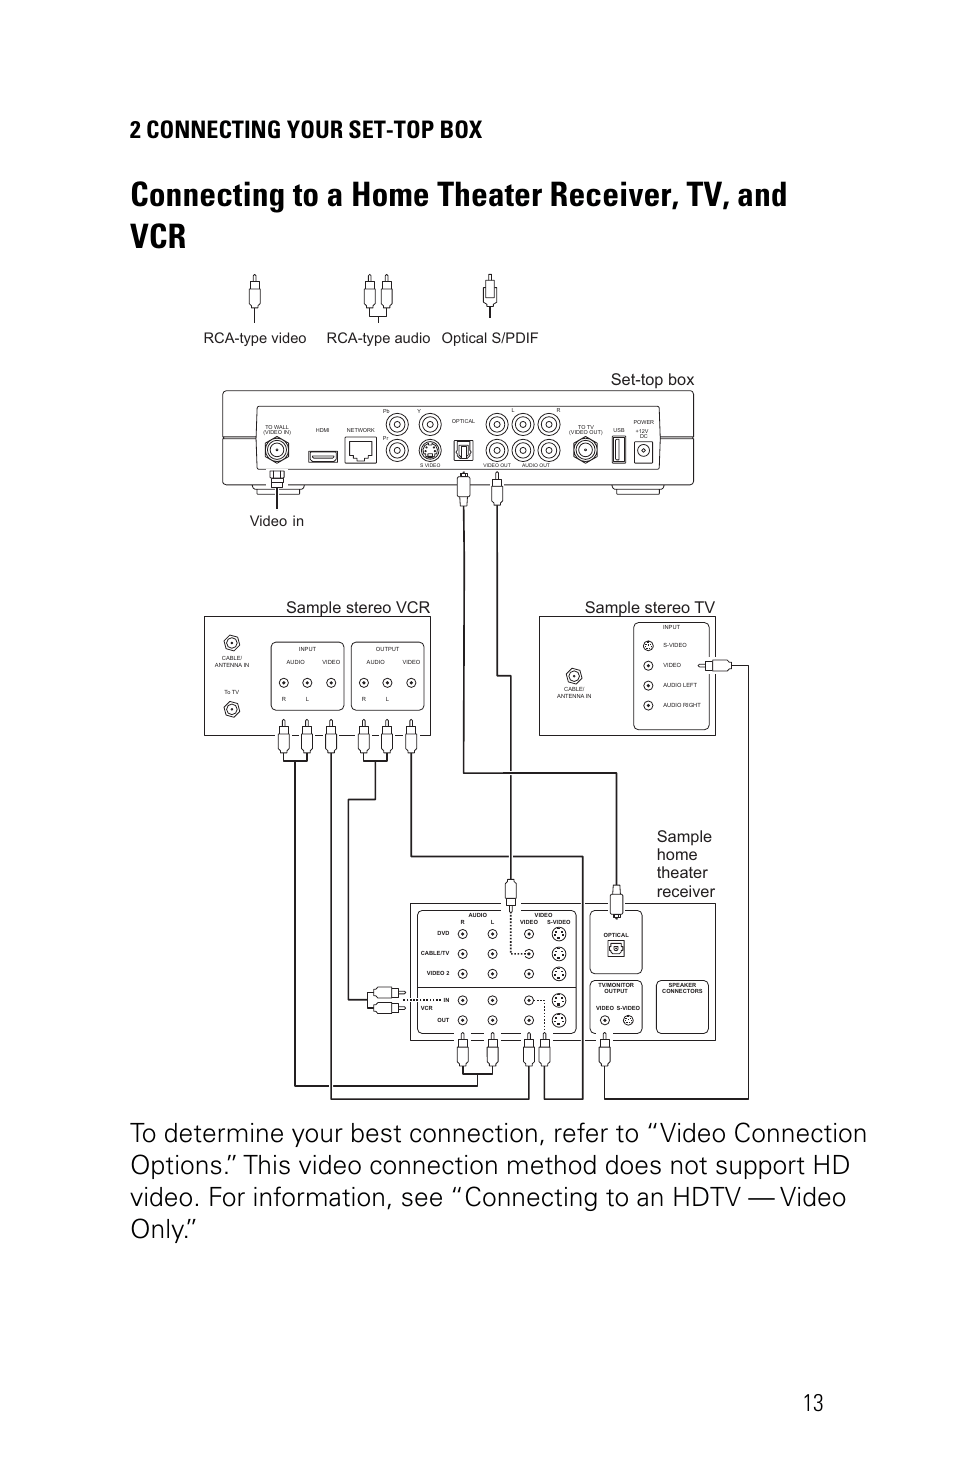 medium resolution of connecting to a home theater receiver tv and vcr 2 connecting your set